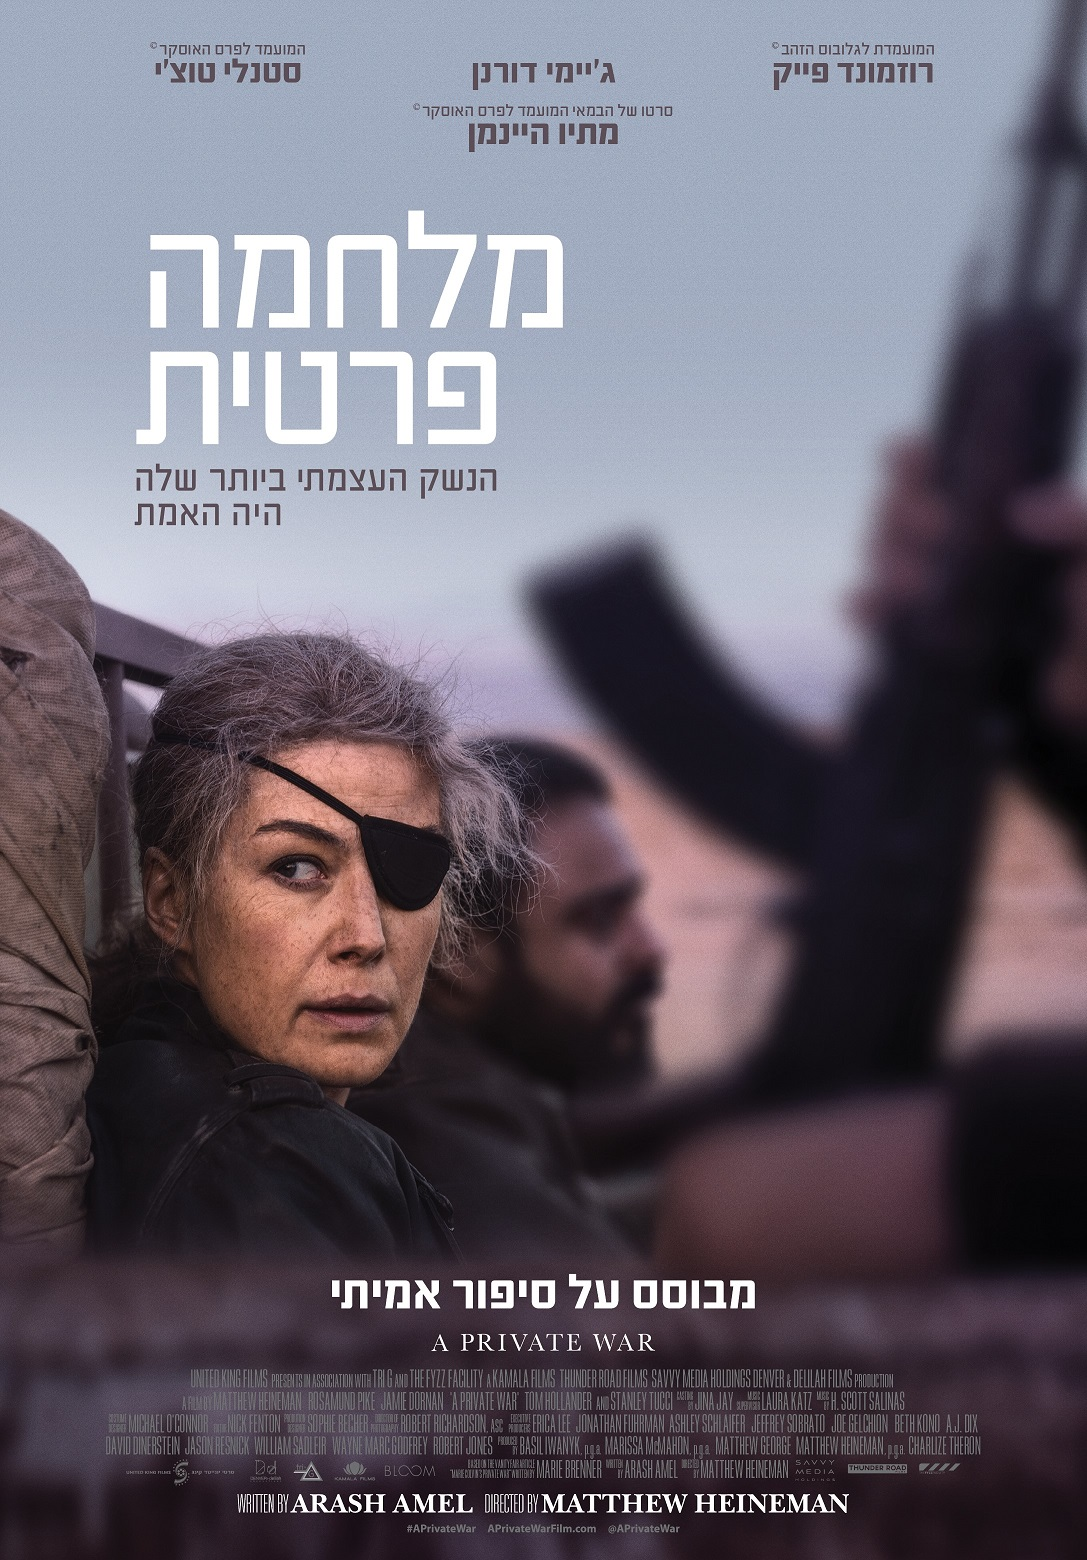 //cinema-maalot.co.il/wp-content/uploads/2019/05/מלחמה-פרטית.jpg